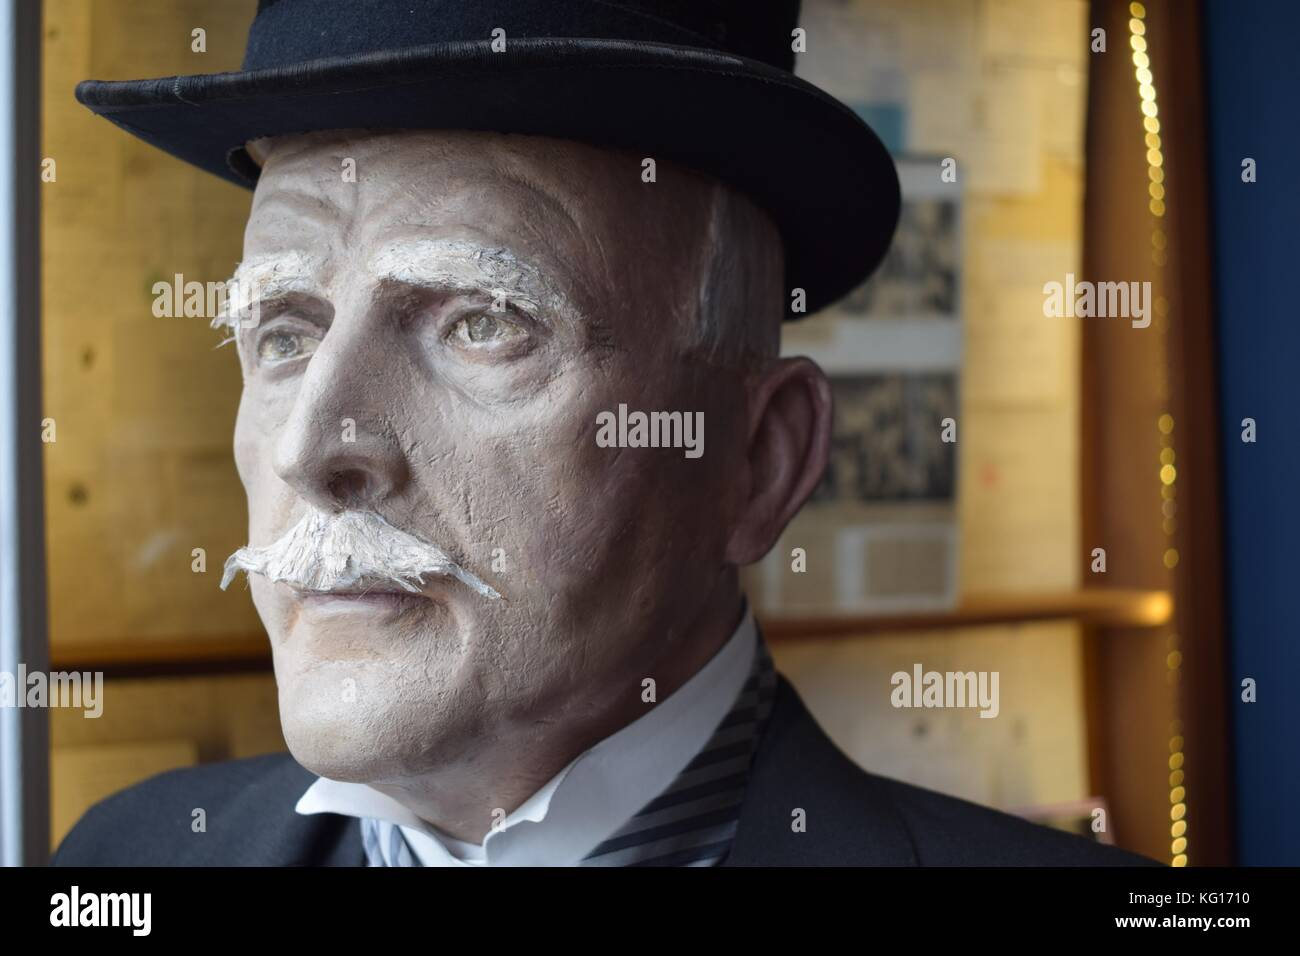 Statue of an old gentleman looking out of a window. - Stock Image